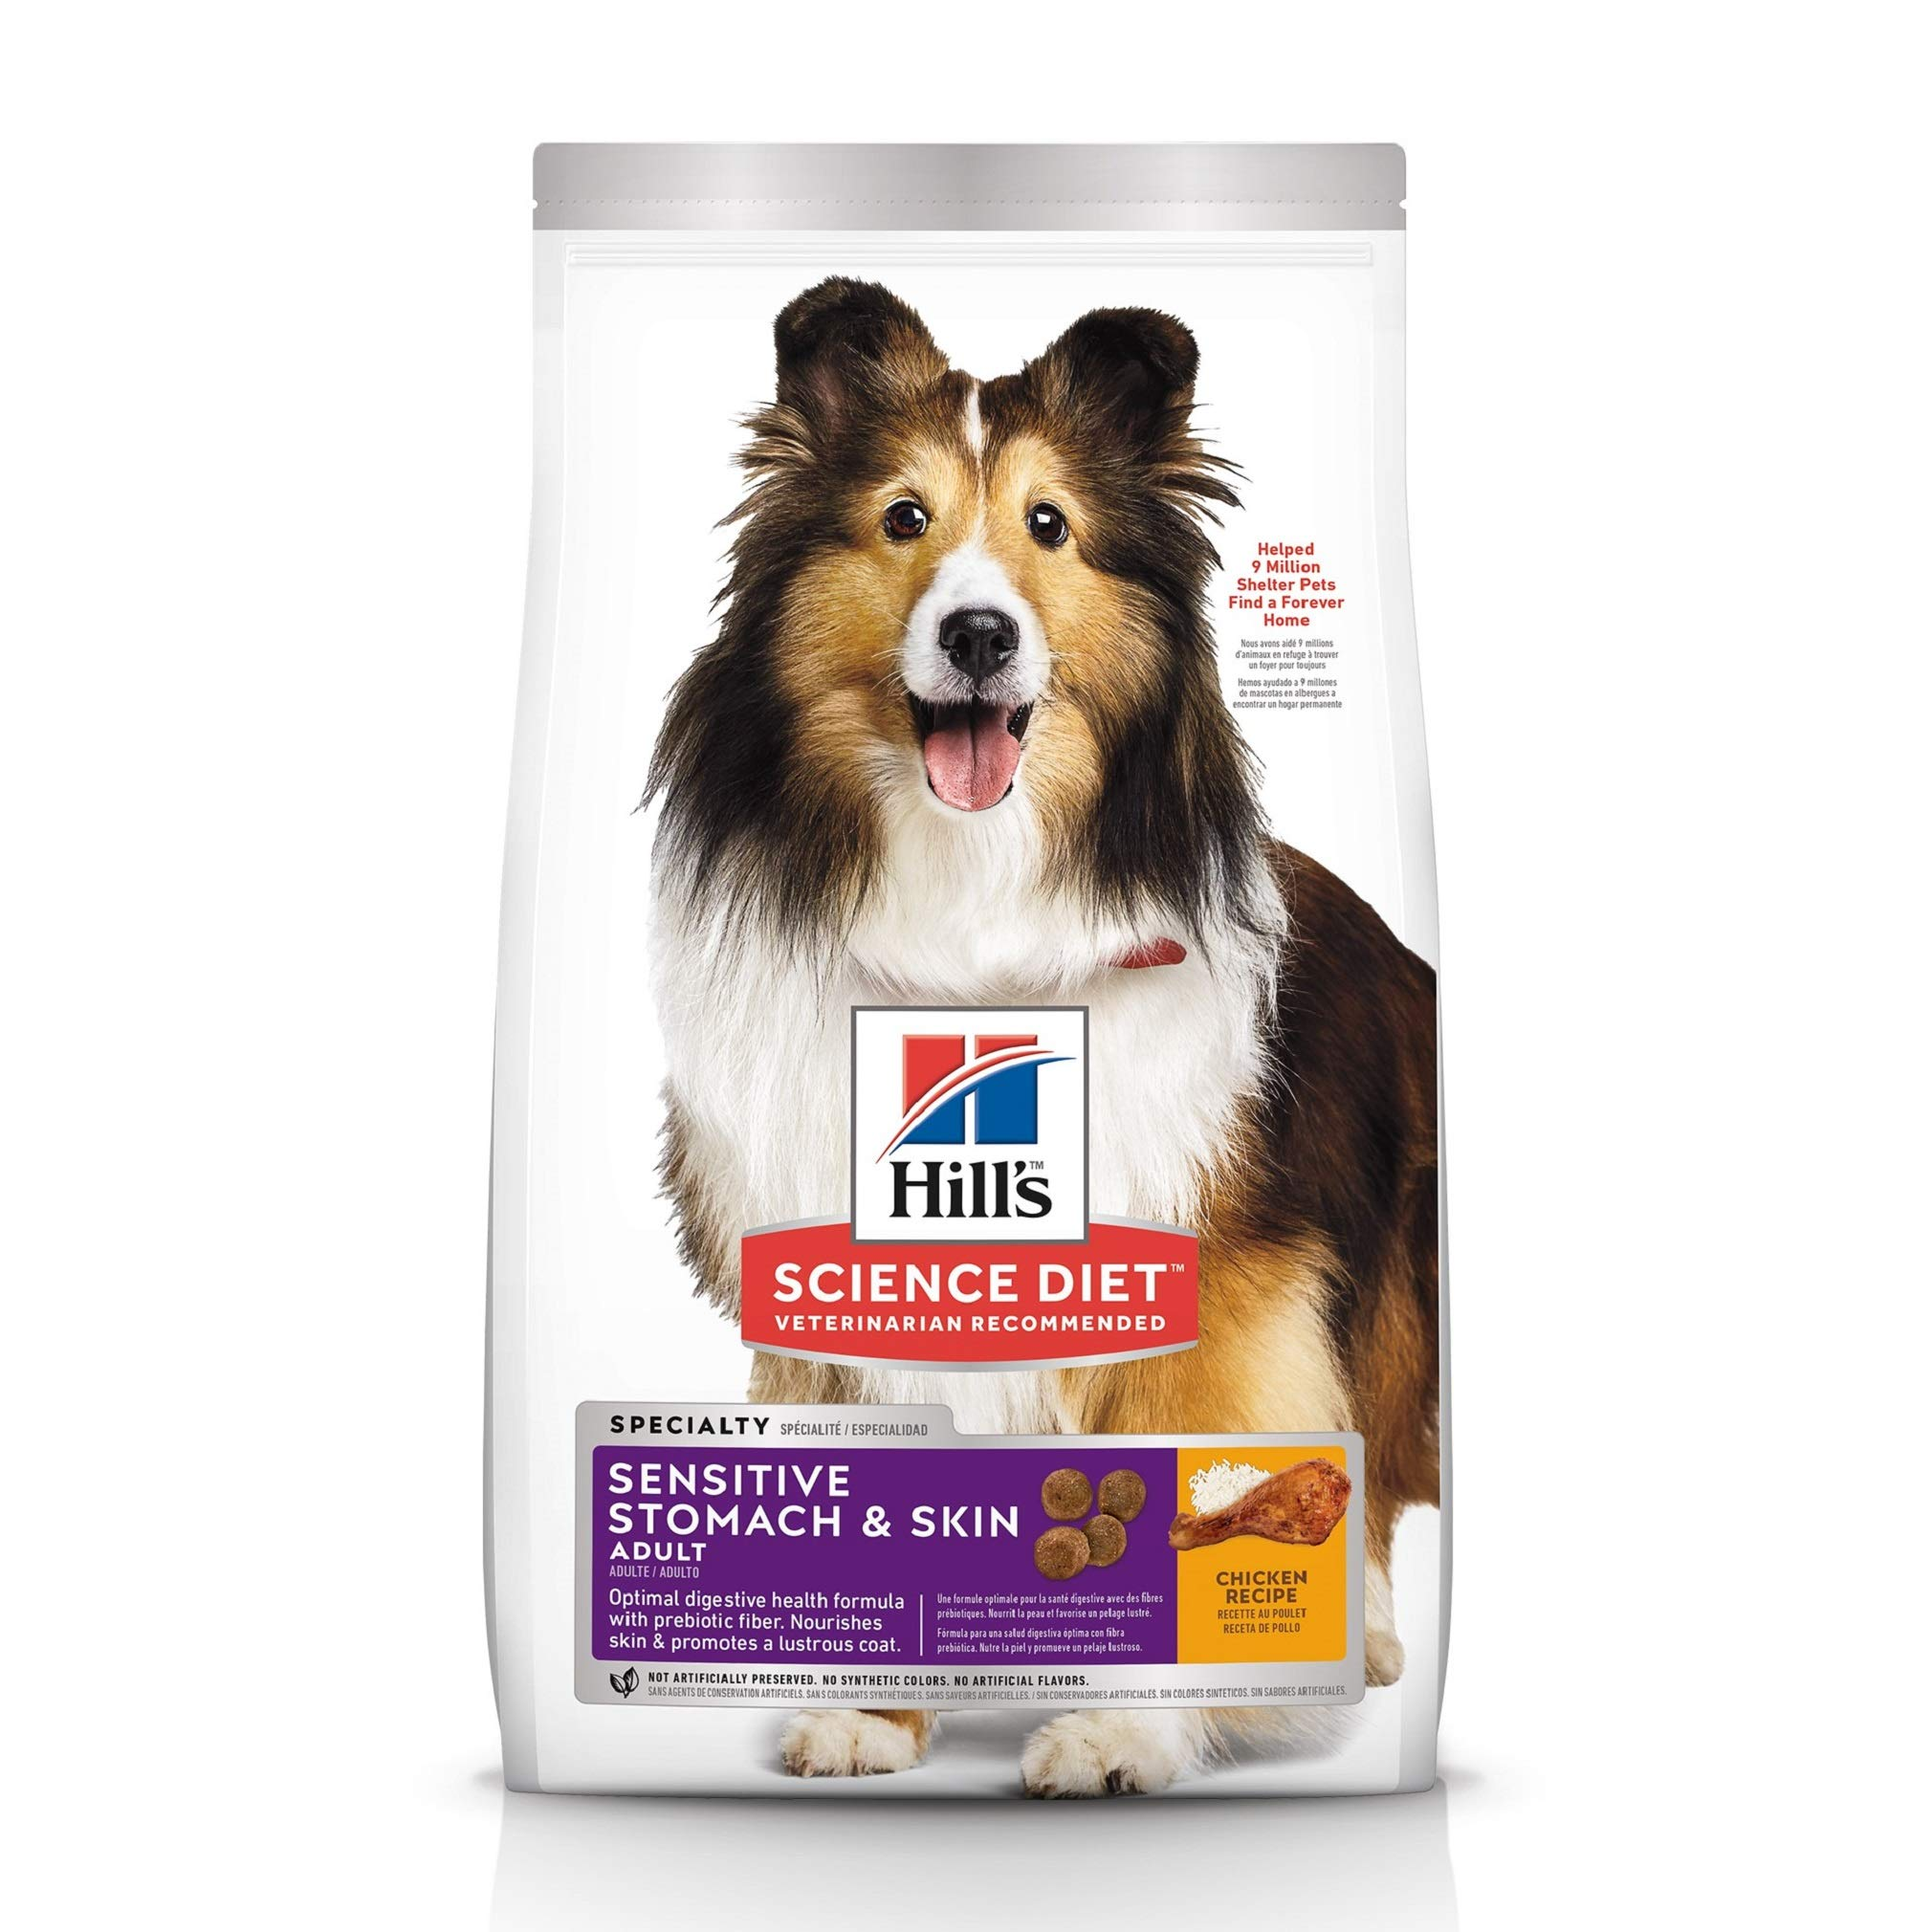 Hills Science Diet Dry DogFood, Adult, Sensitive Stomach & Skin